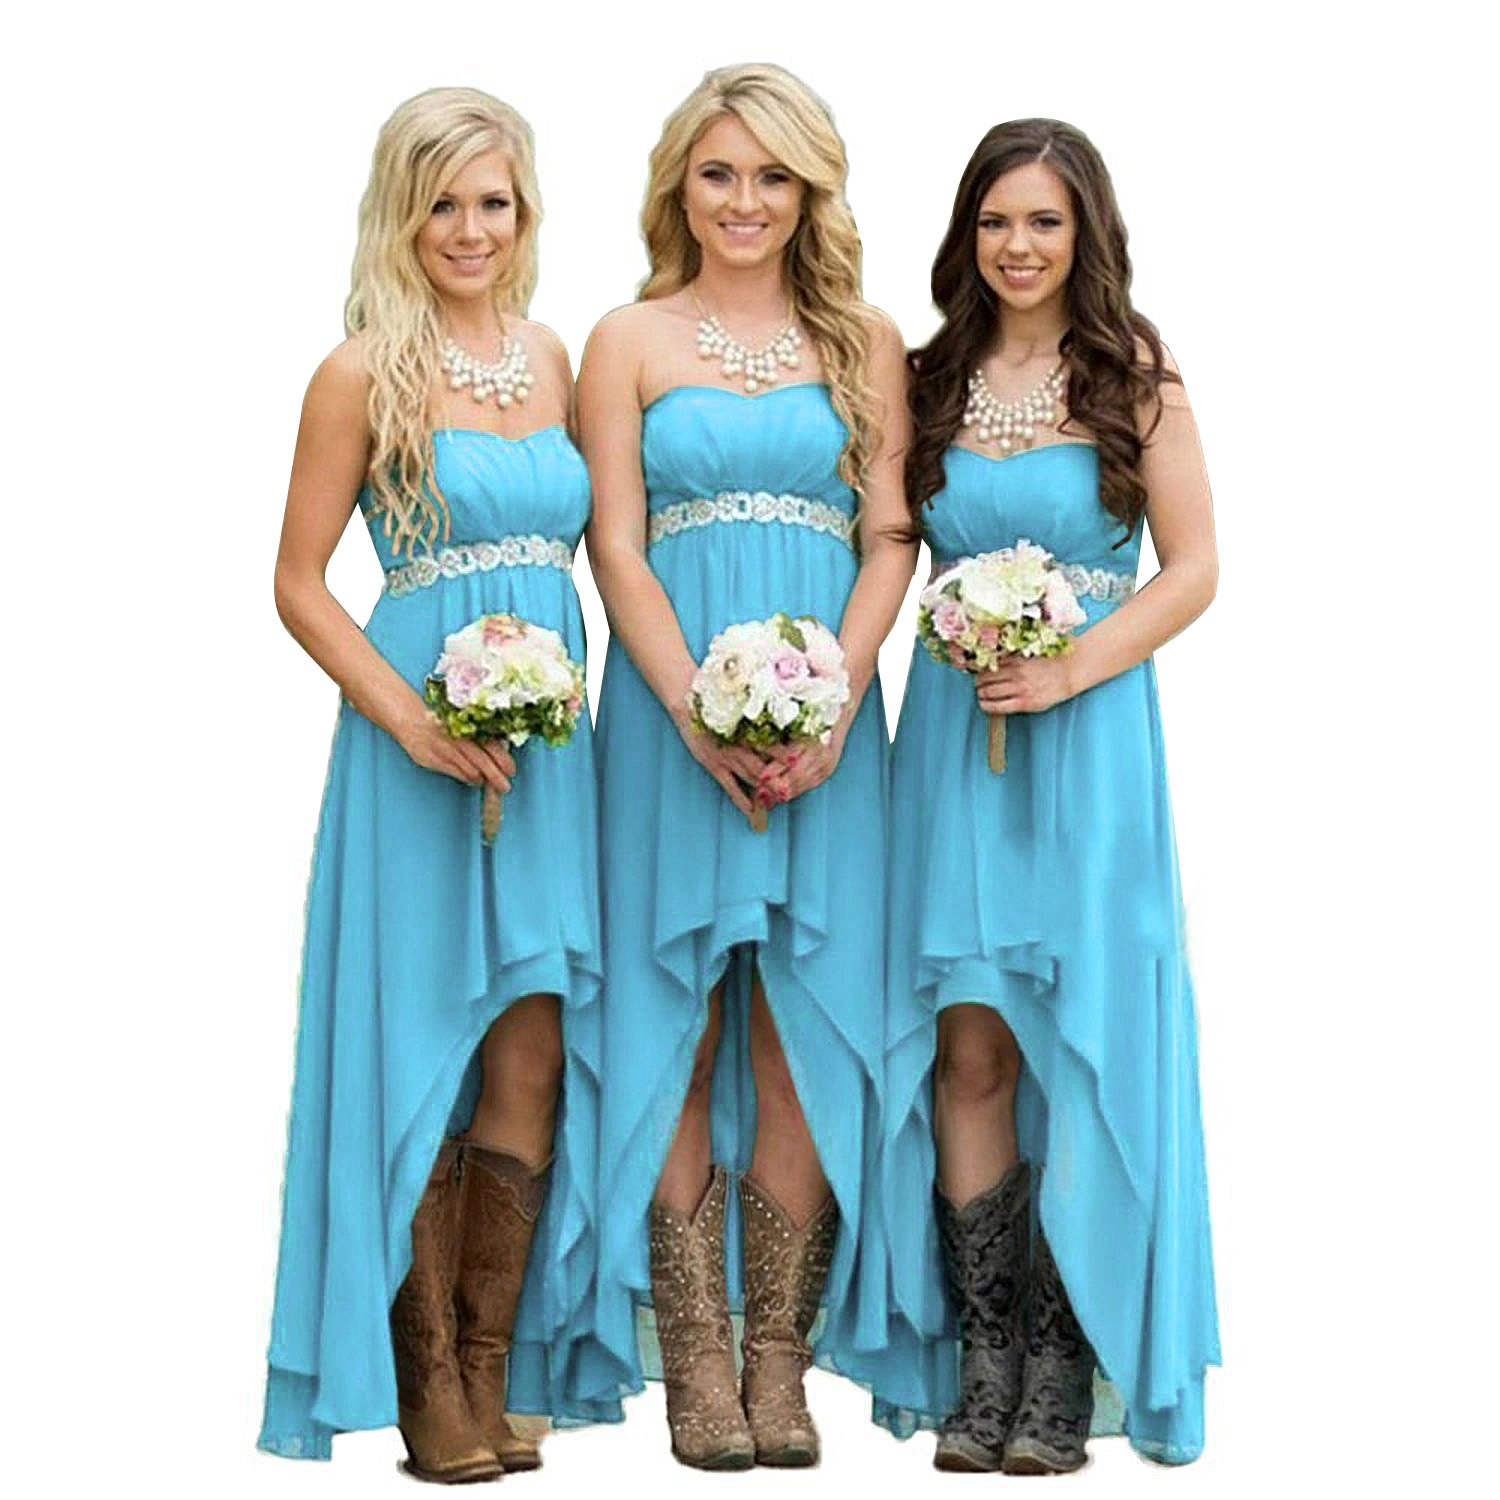 Fanciest Women\' Strapless High Low Bridesmaid Dresses Wedding Party ...